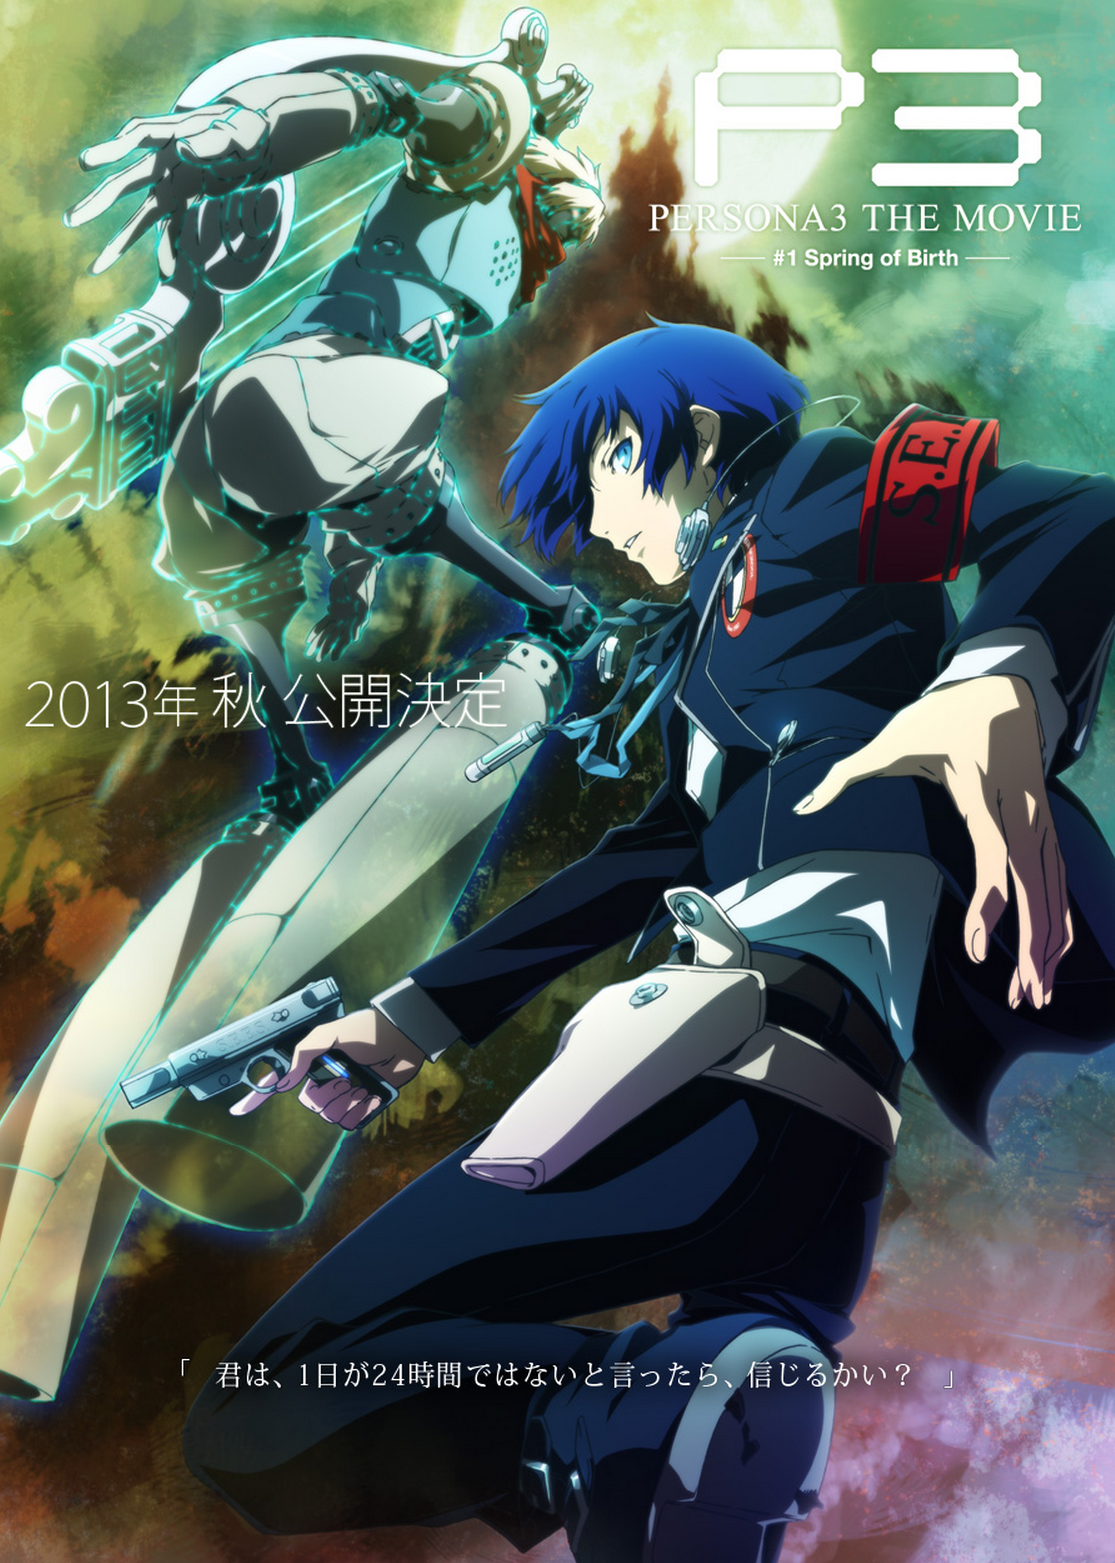 Persona 3 iphone 5 wallpaper - P3 Movie Promo Poster Png